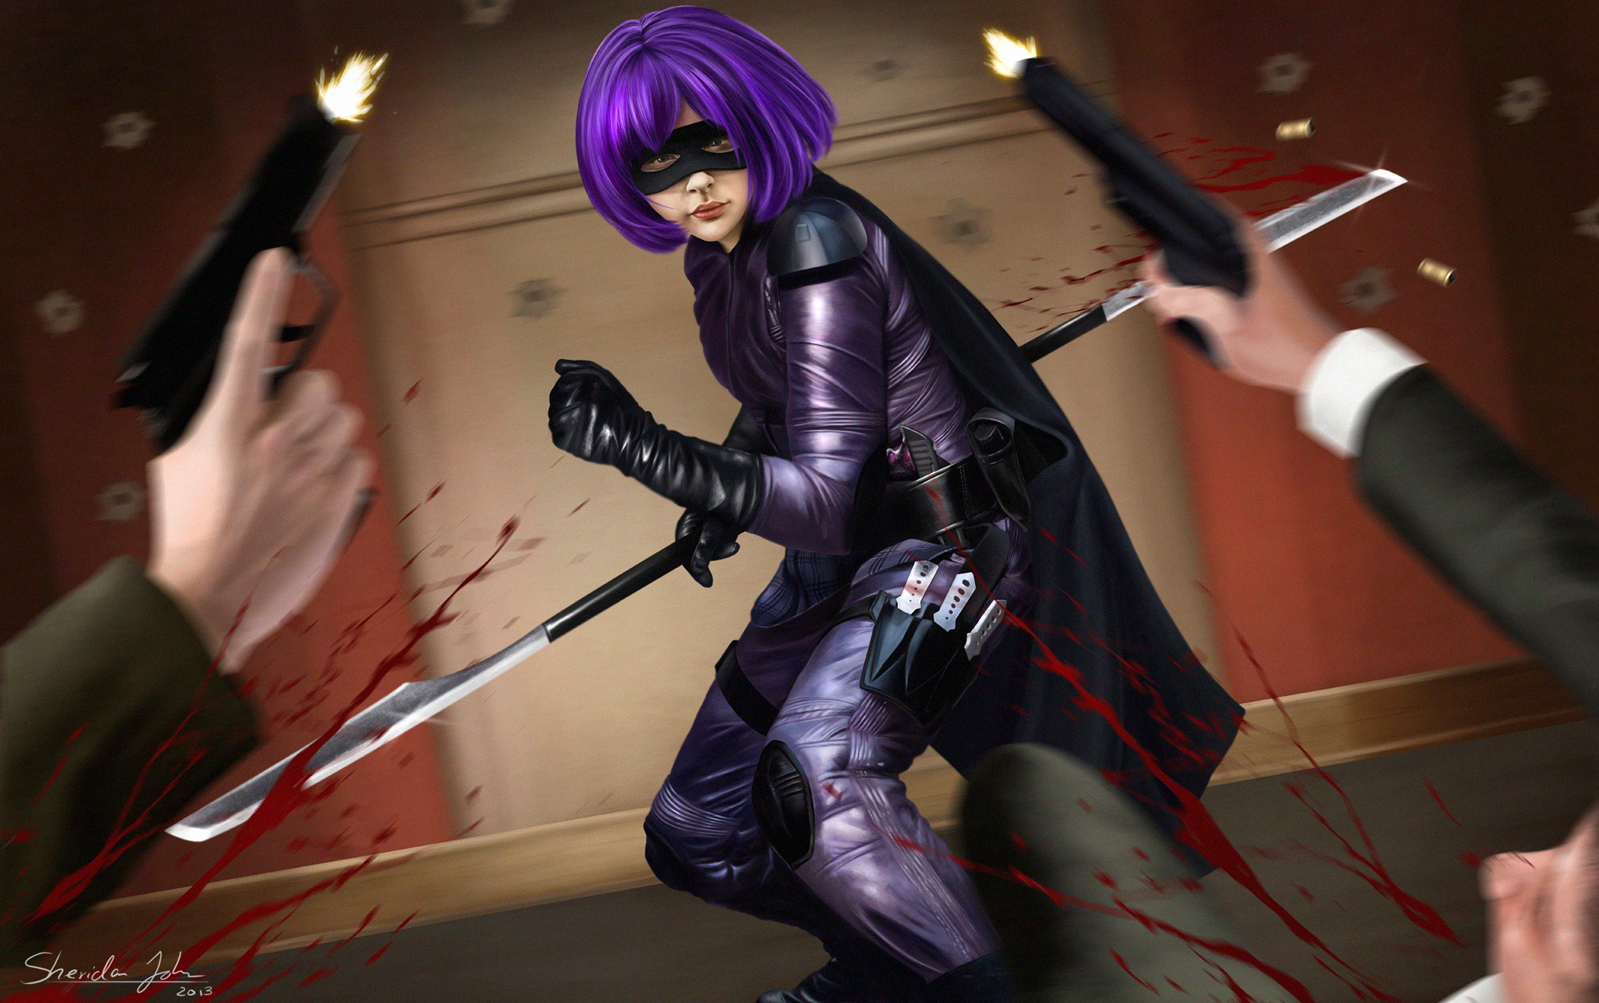 Das Hit-Girl aus Kick Ass